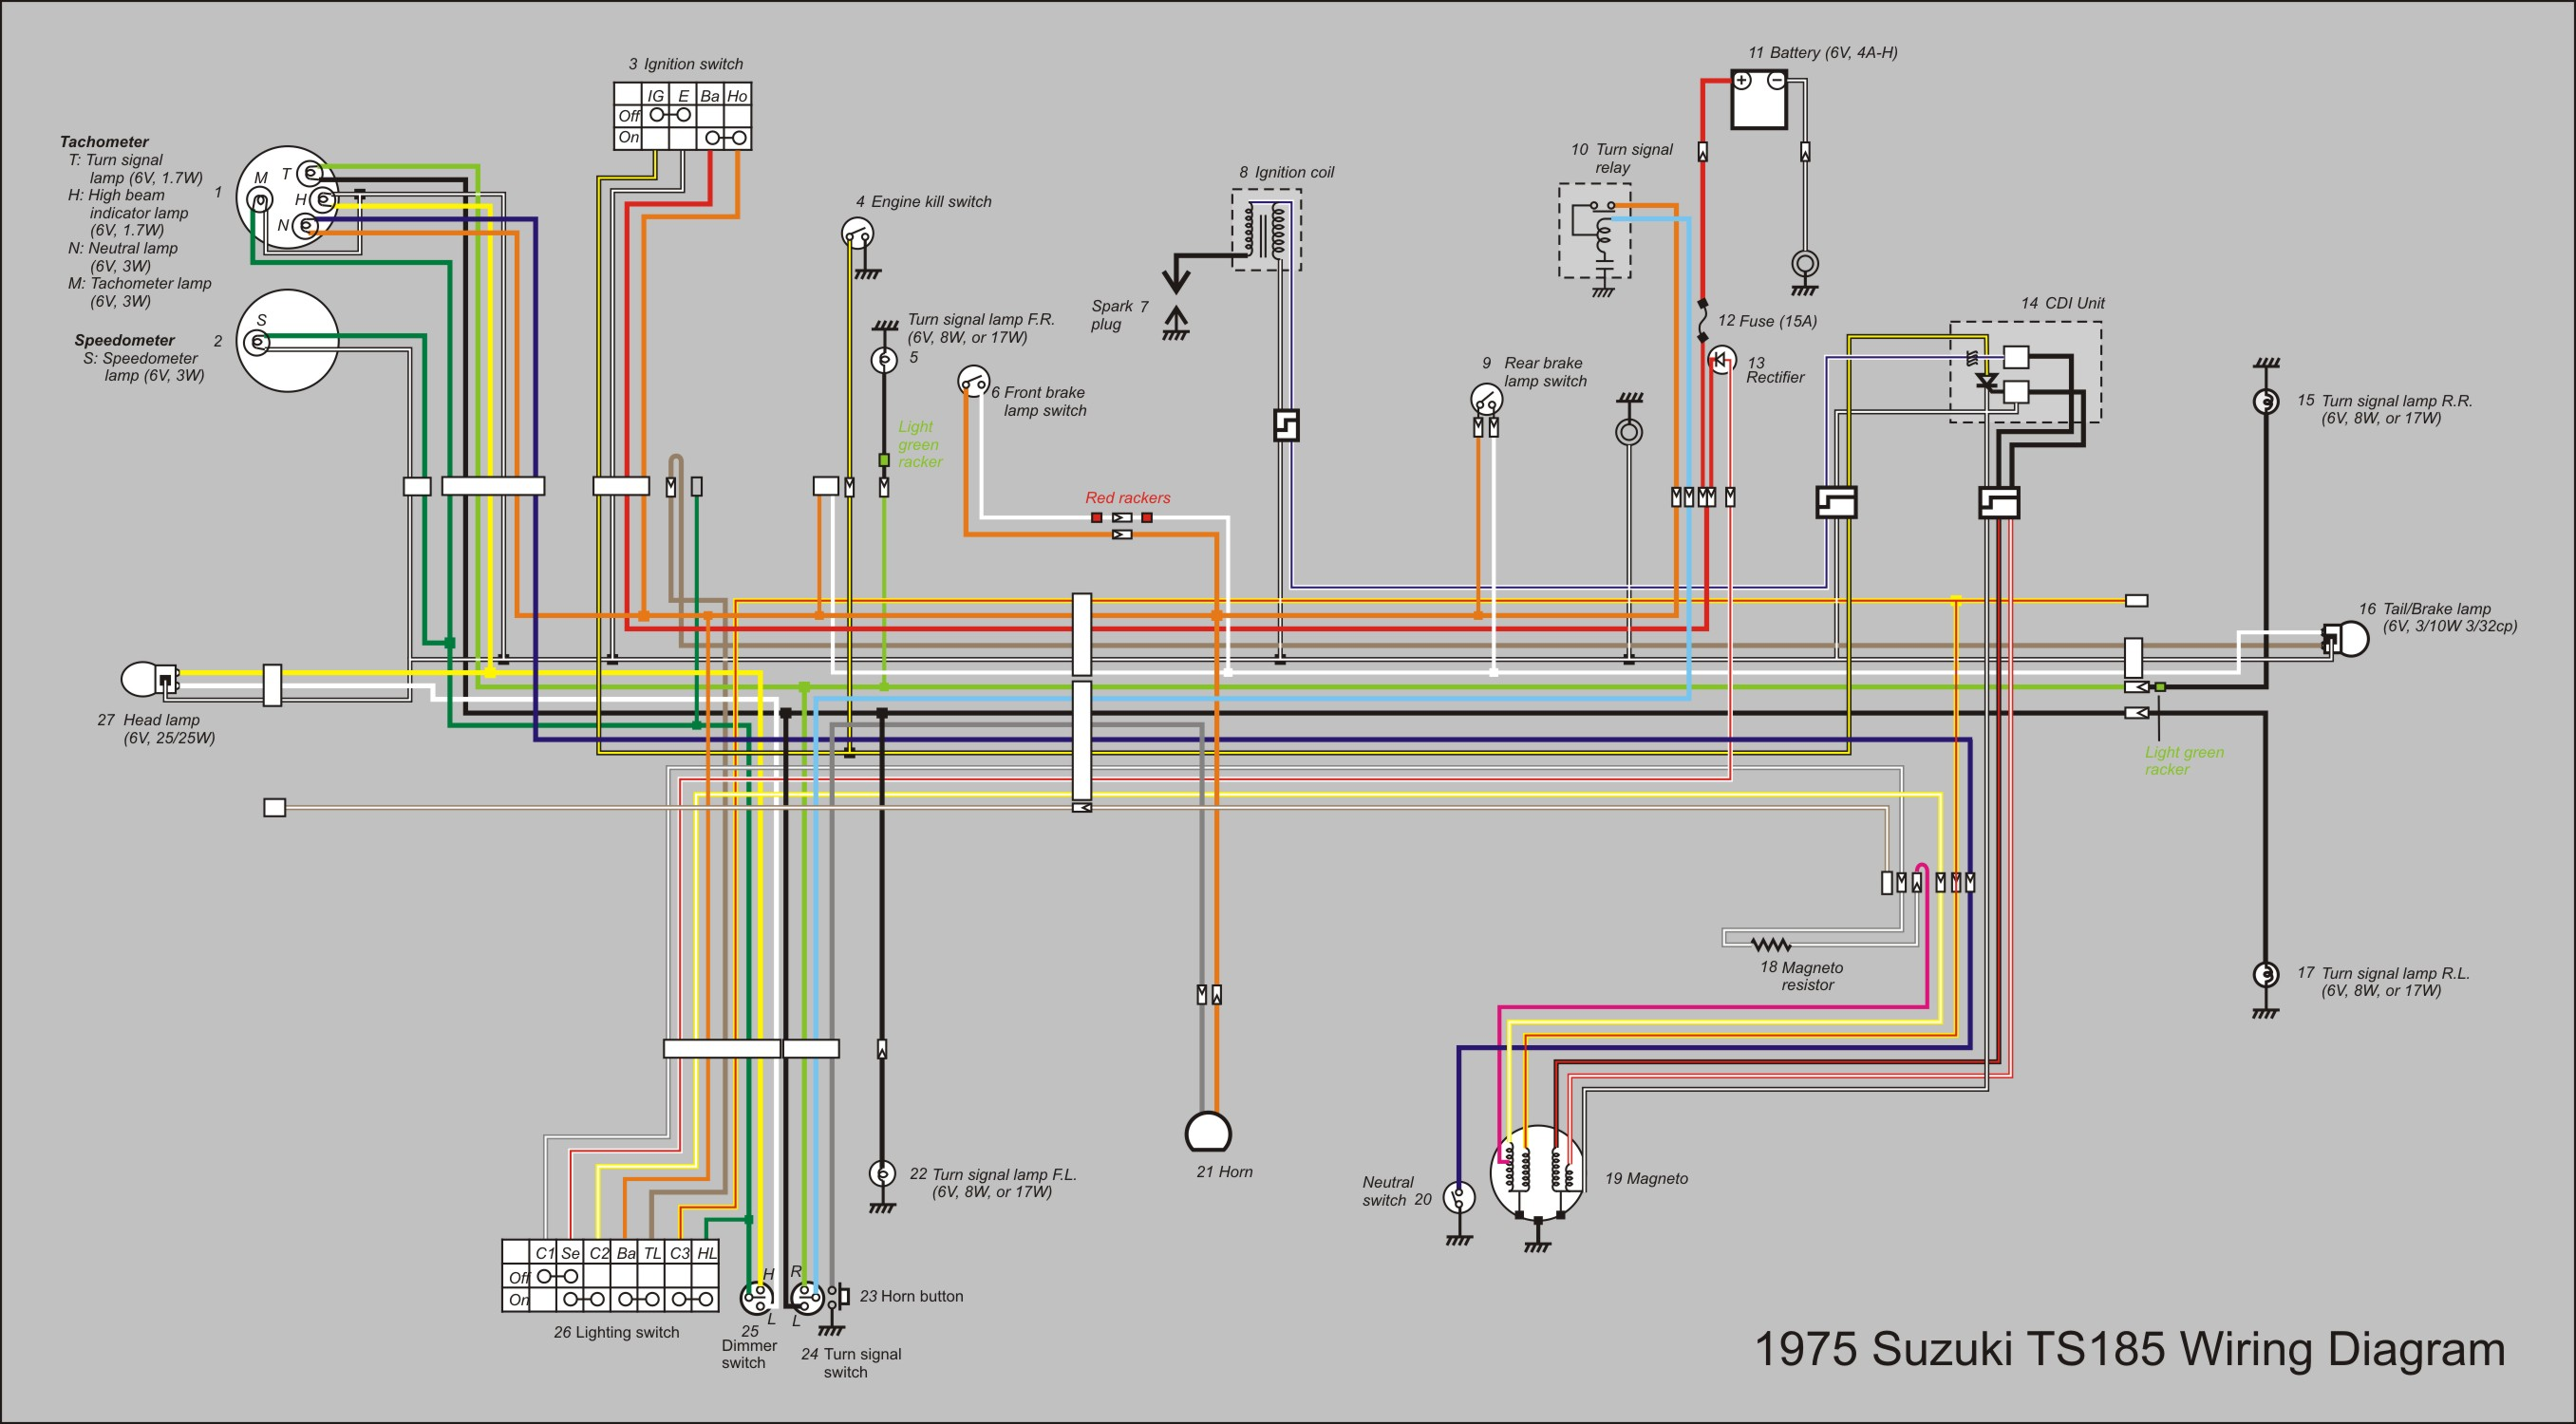 Suzuki Ts 185 Wiring Diagram Solution Of Your Guide 250 File Ts185 New Wikimedia Commons Rh Org Gs 550